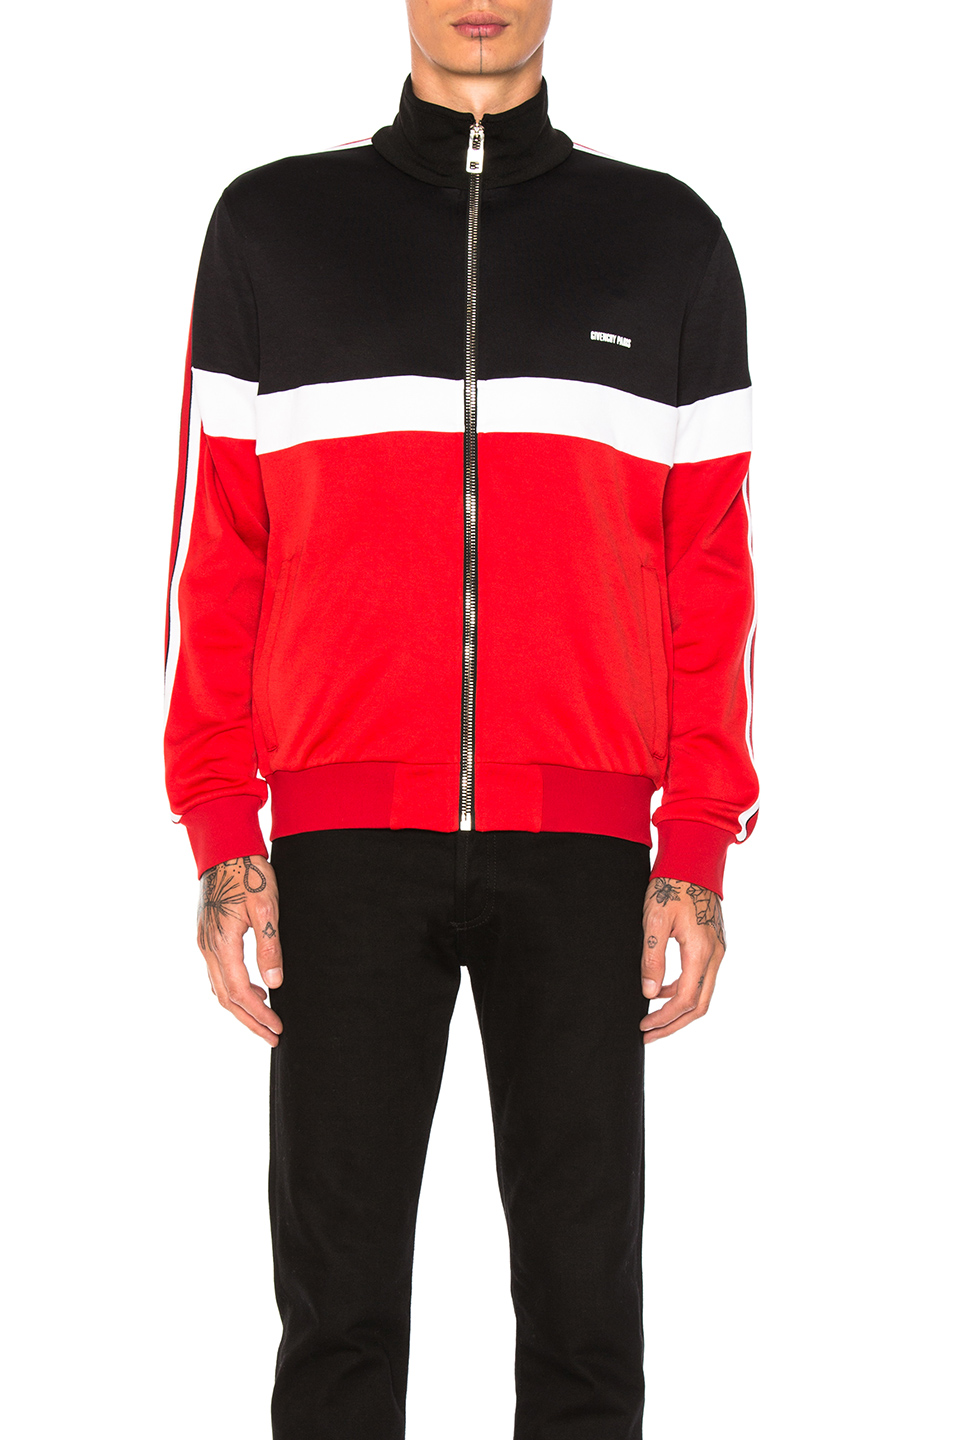 Photo of Givenchy Track Jacket in Black,Red,Stripes,White - shop Givenchy menswear